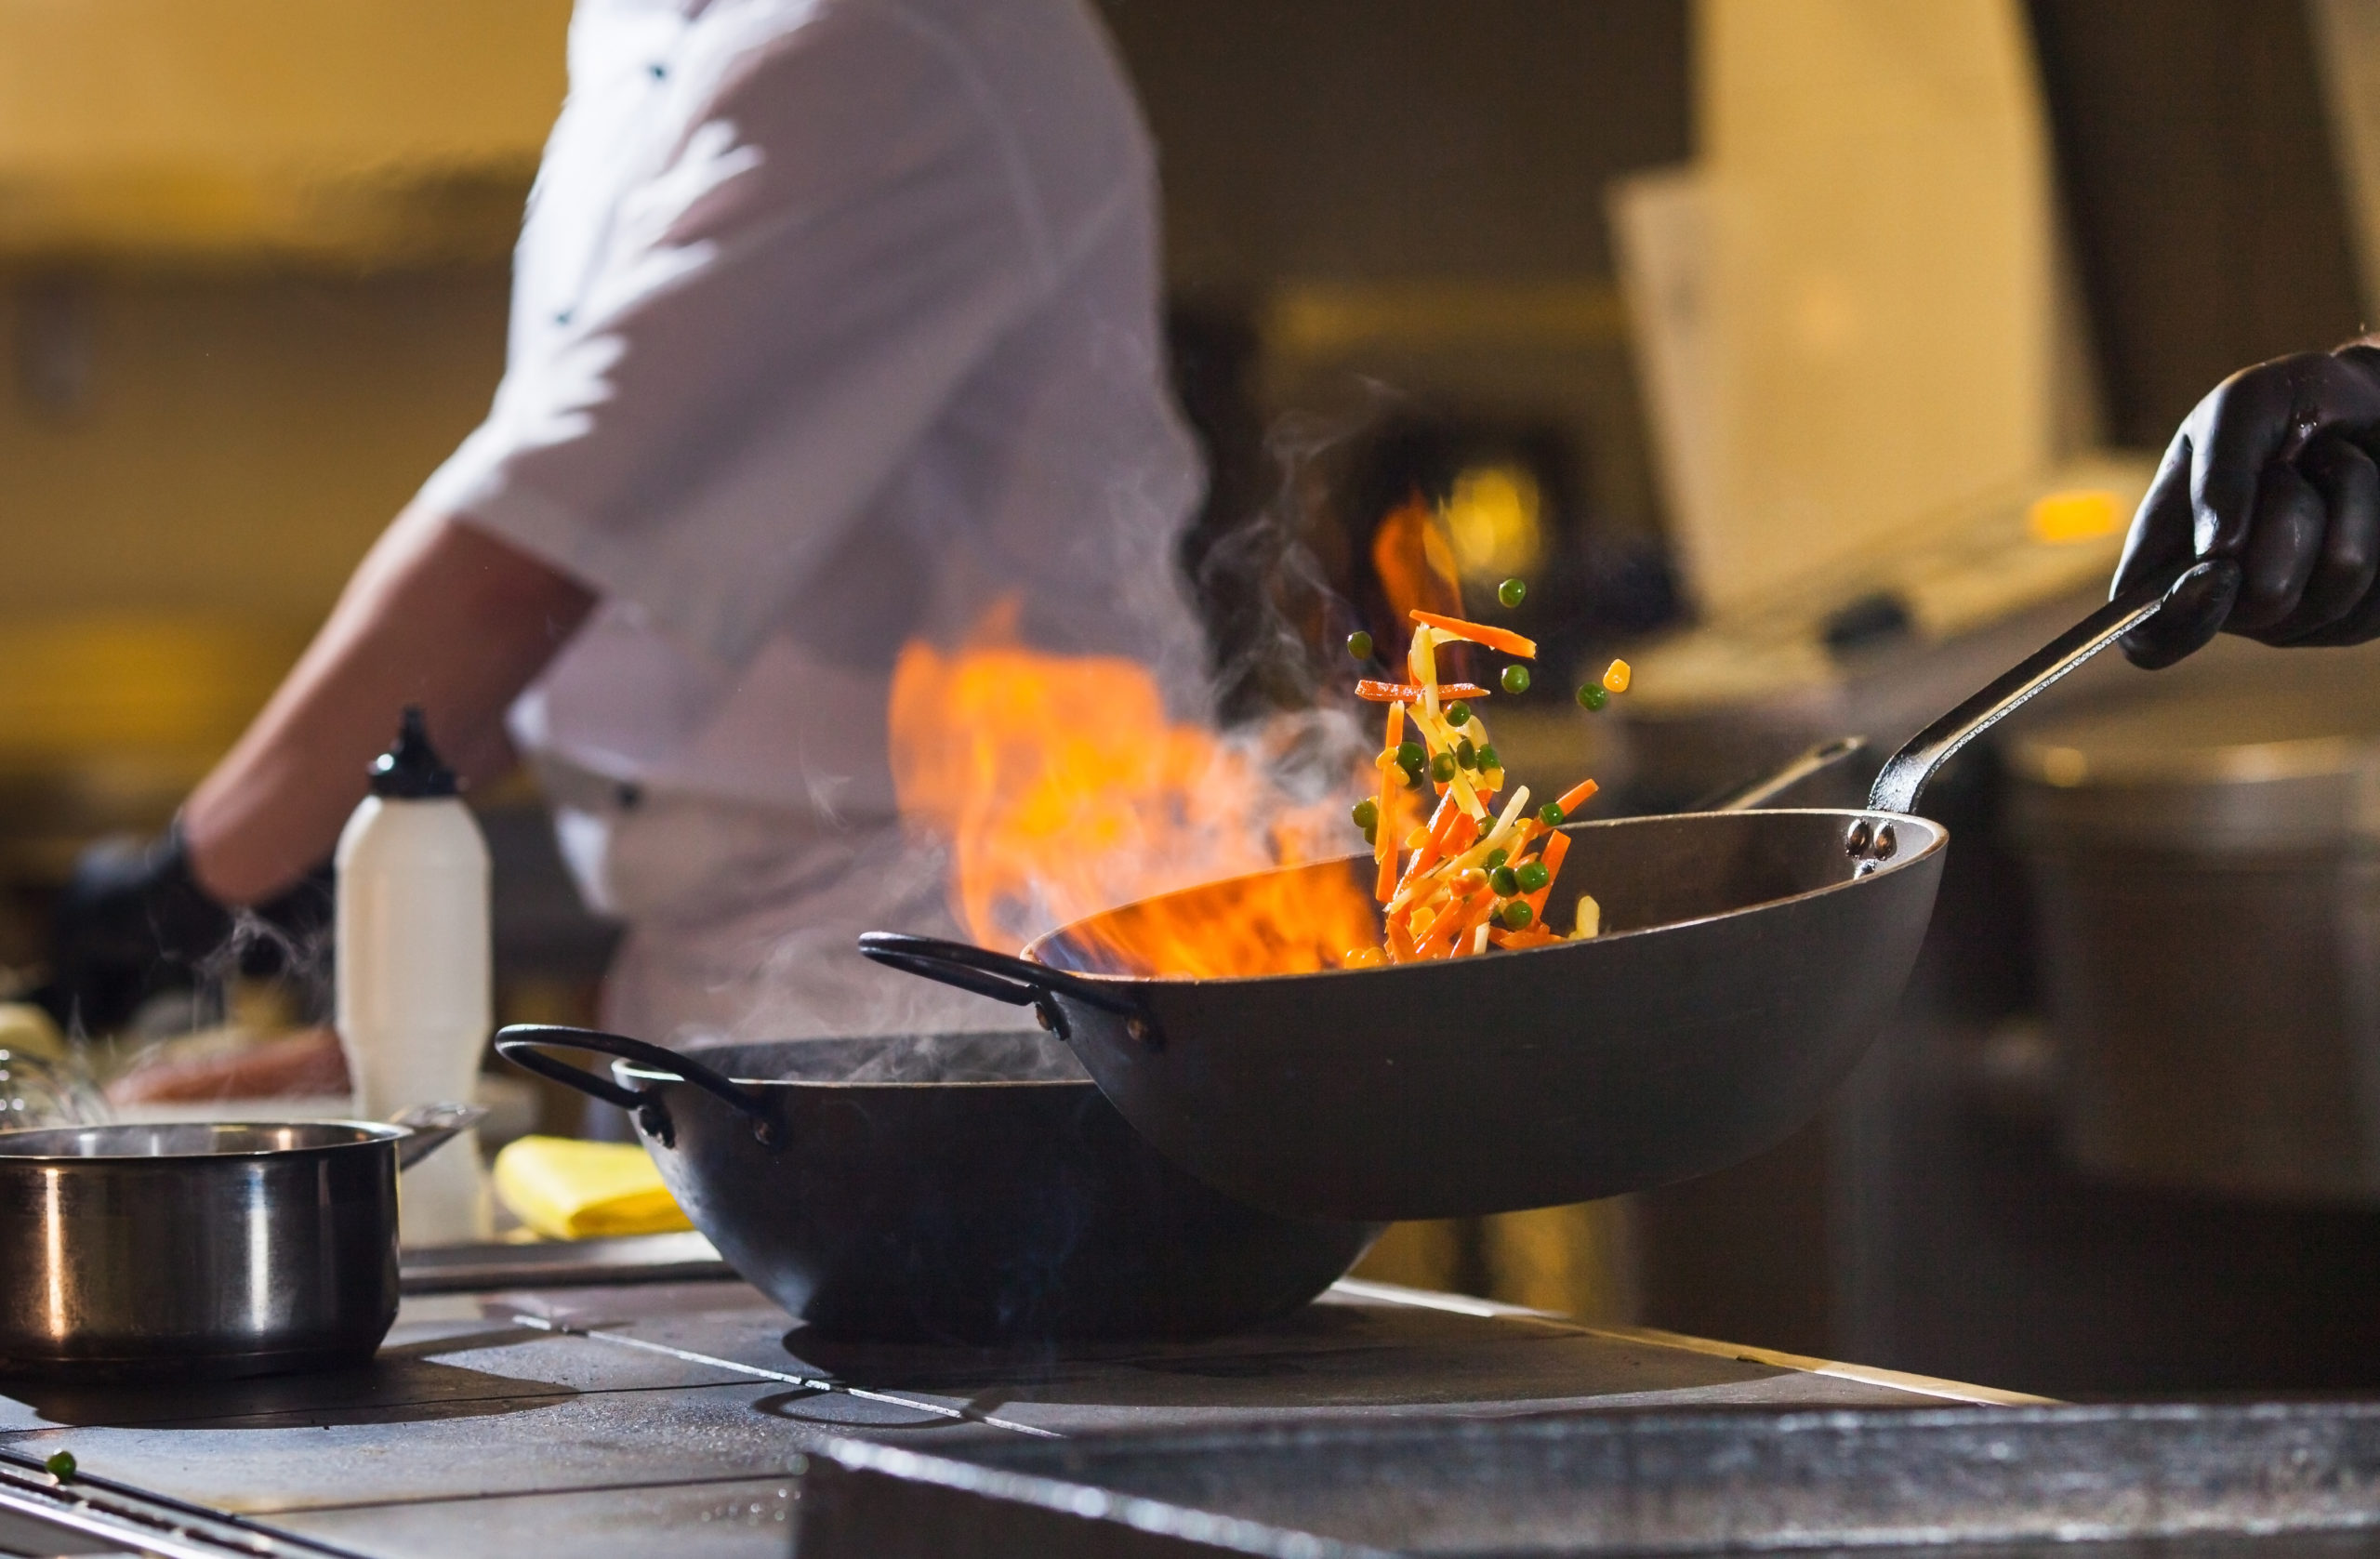 cook making dinner in the kitchen of high-end restaurant